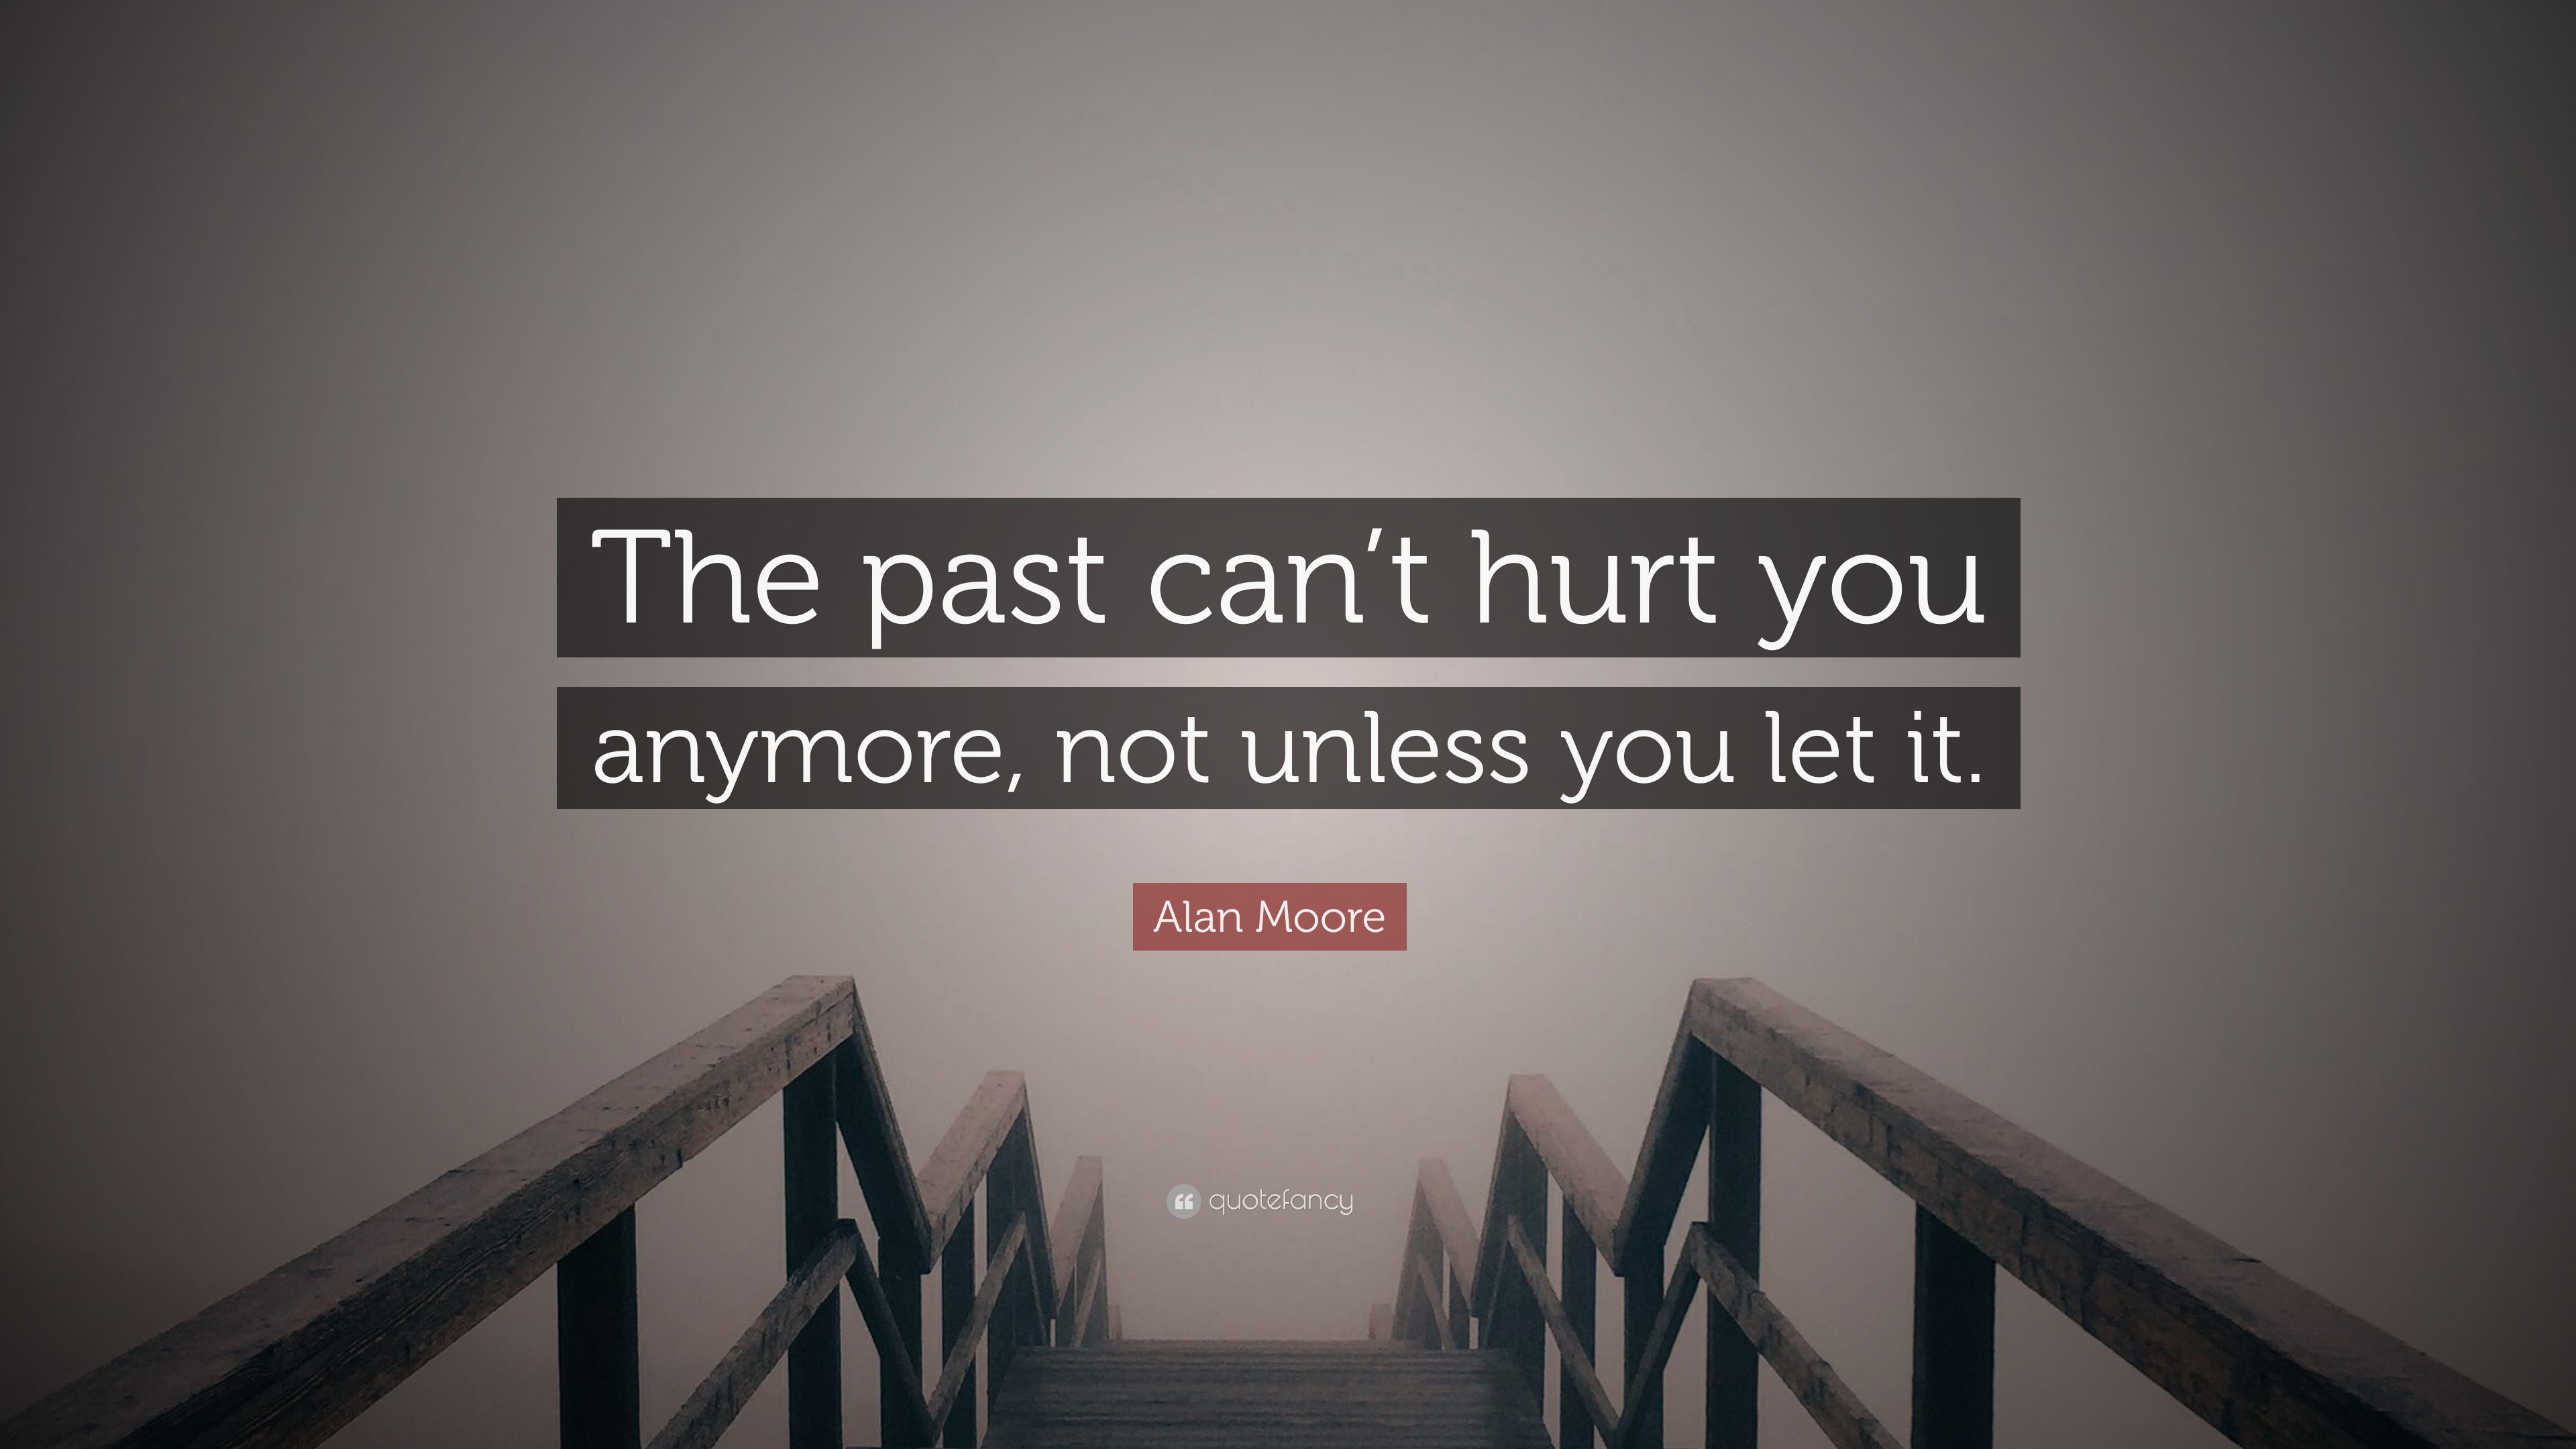 The past can't hurt you anymore, not unless you let it